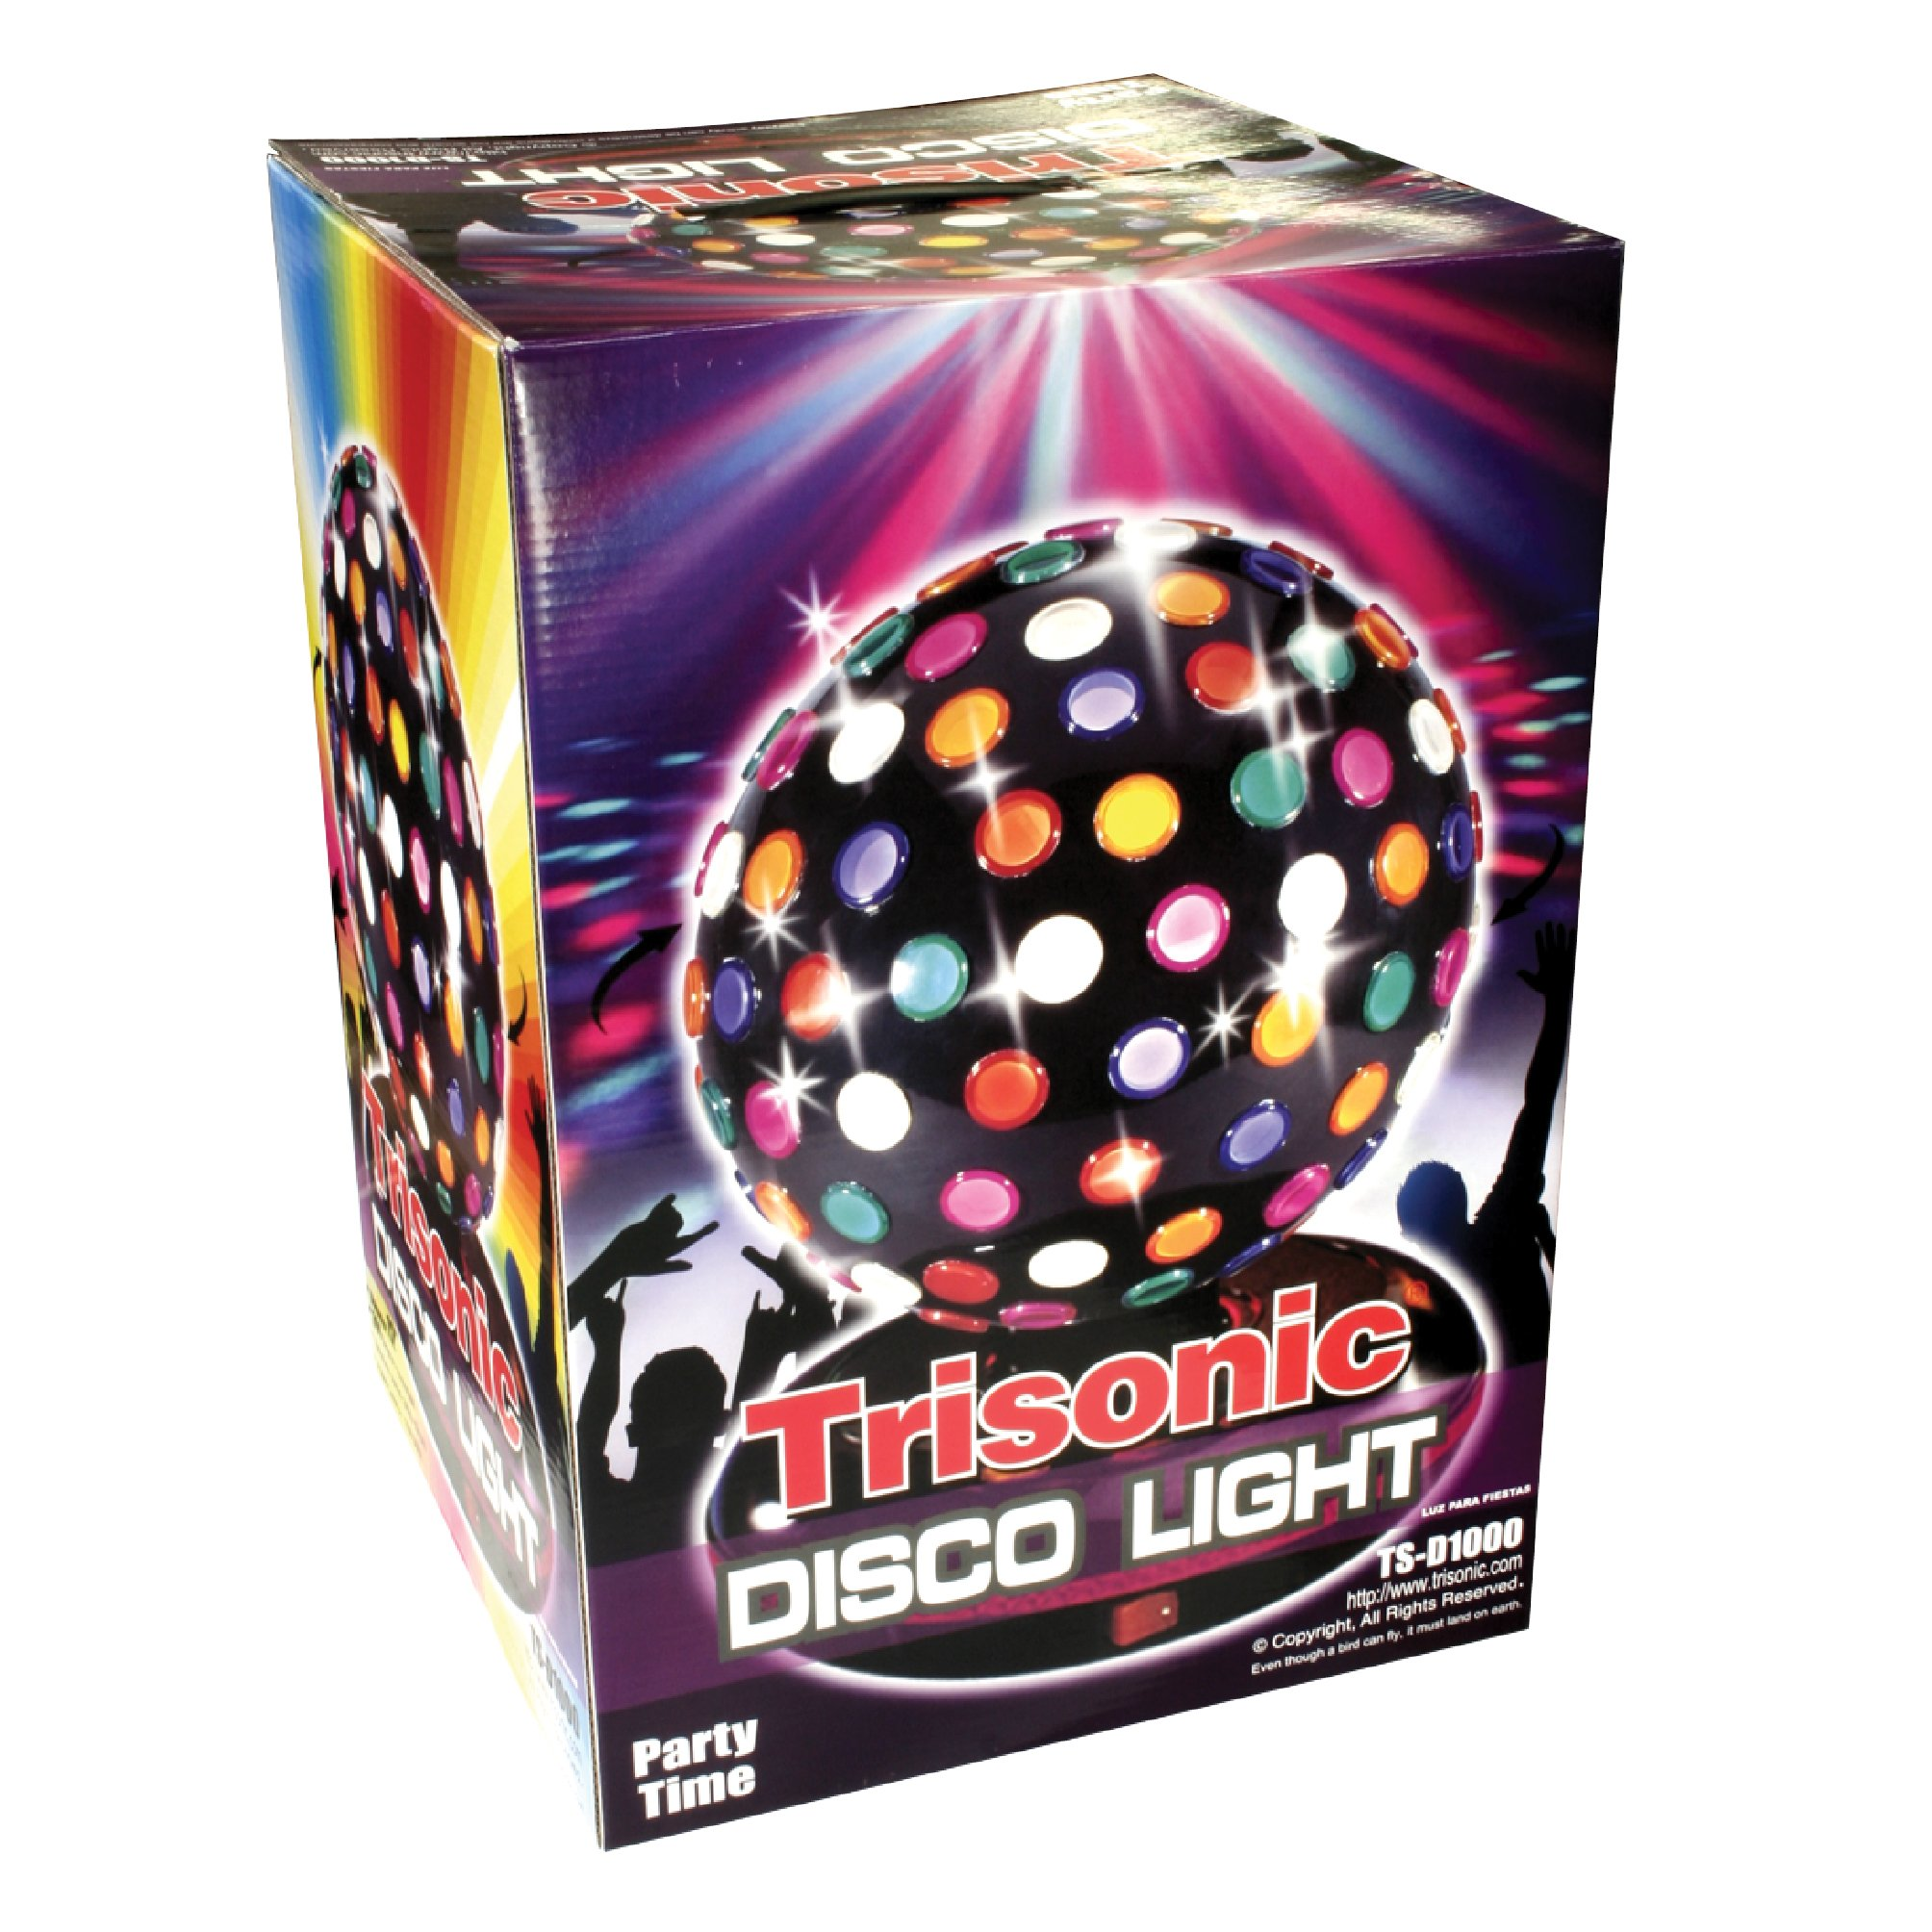 Trisonic Party Time Multi Color 360 Degree Rotating Mirror Disco Light 12''